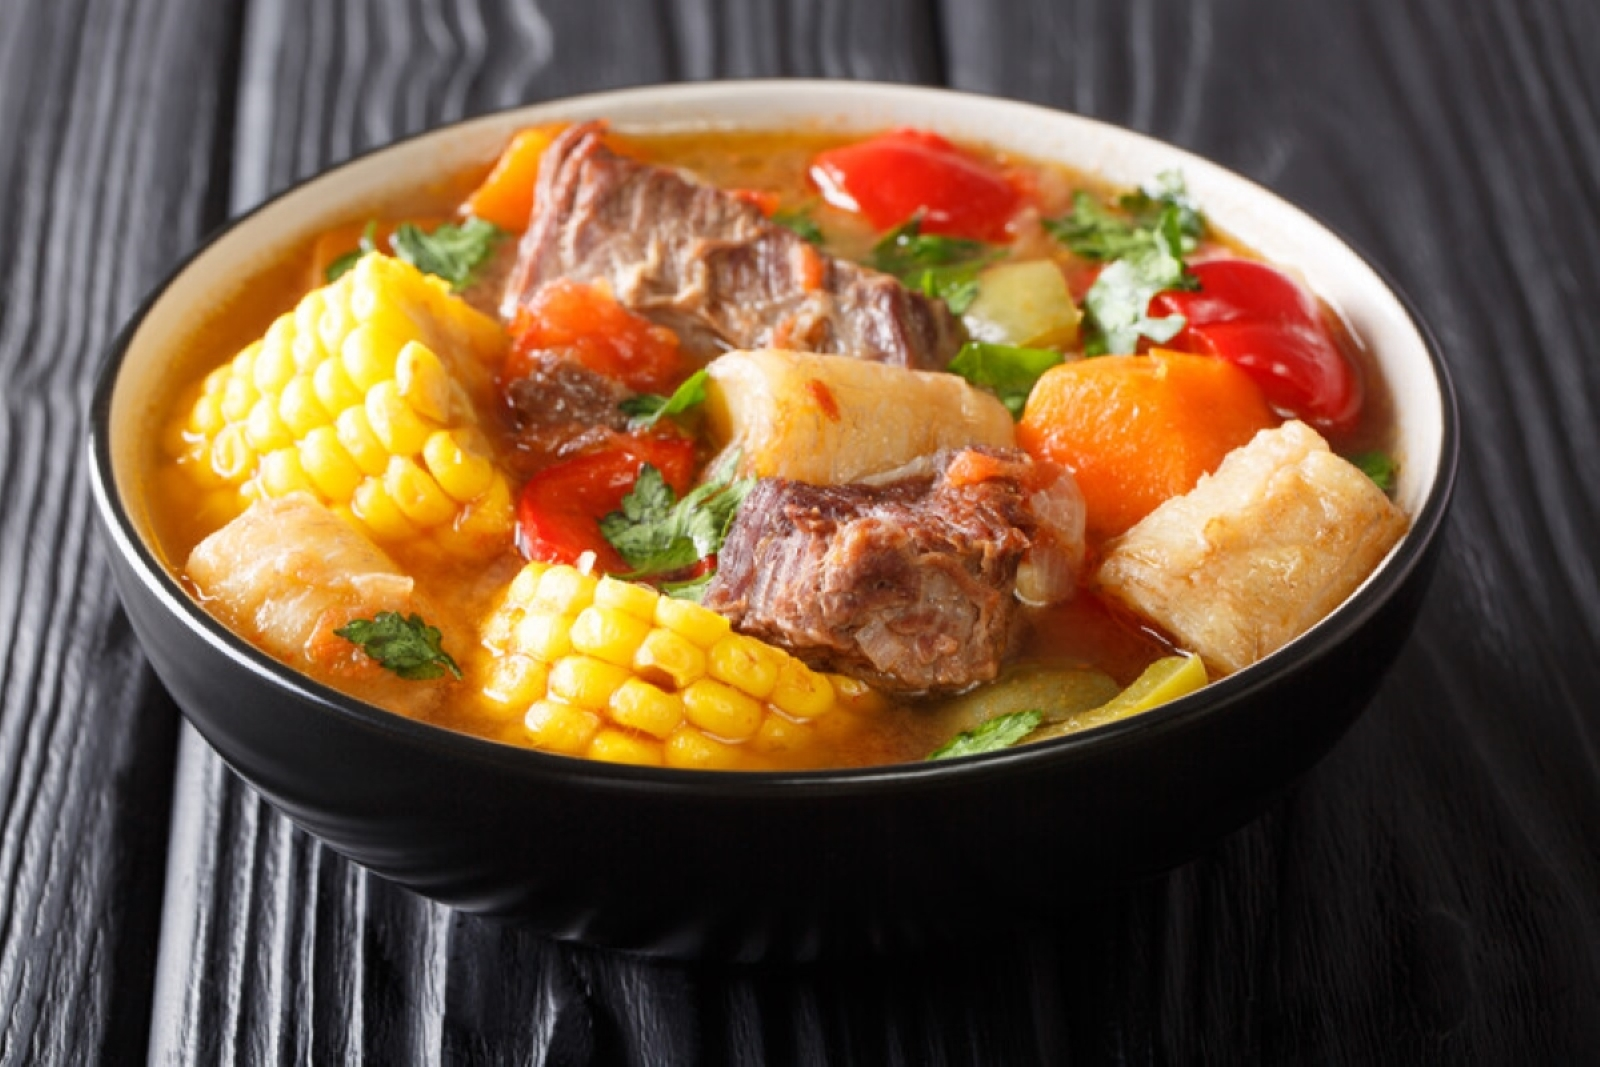 Sancocho with corn on the cob, meat, potatoes, and peppers in a black bown on a black wood table